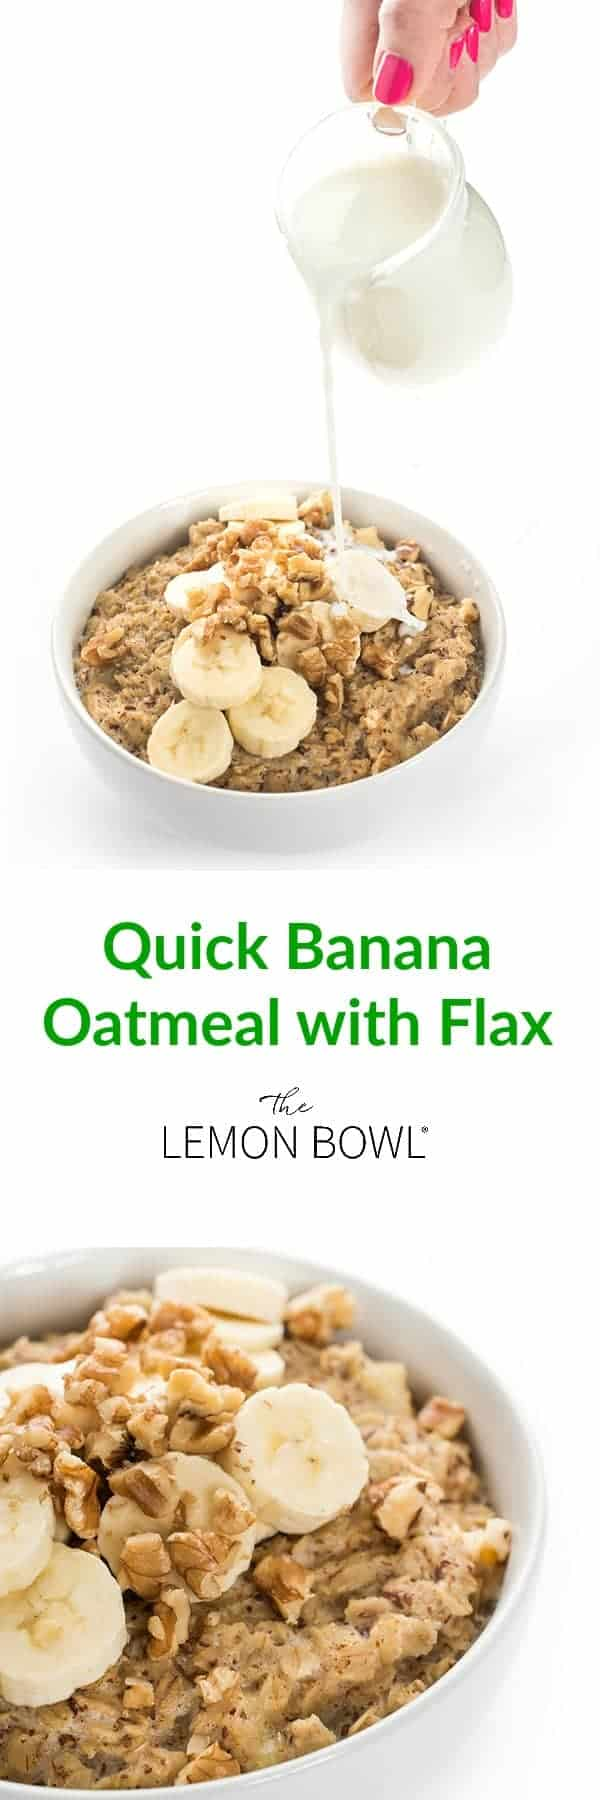 Quick Banana Oatmeal with Flax